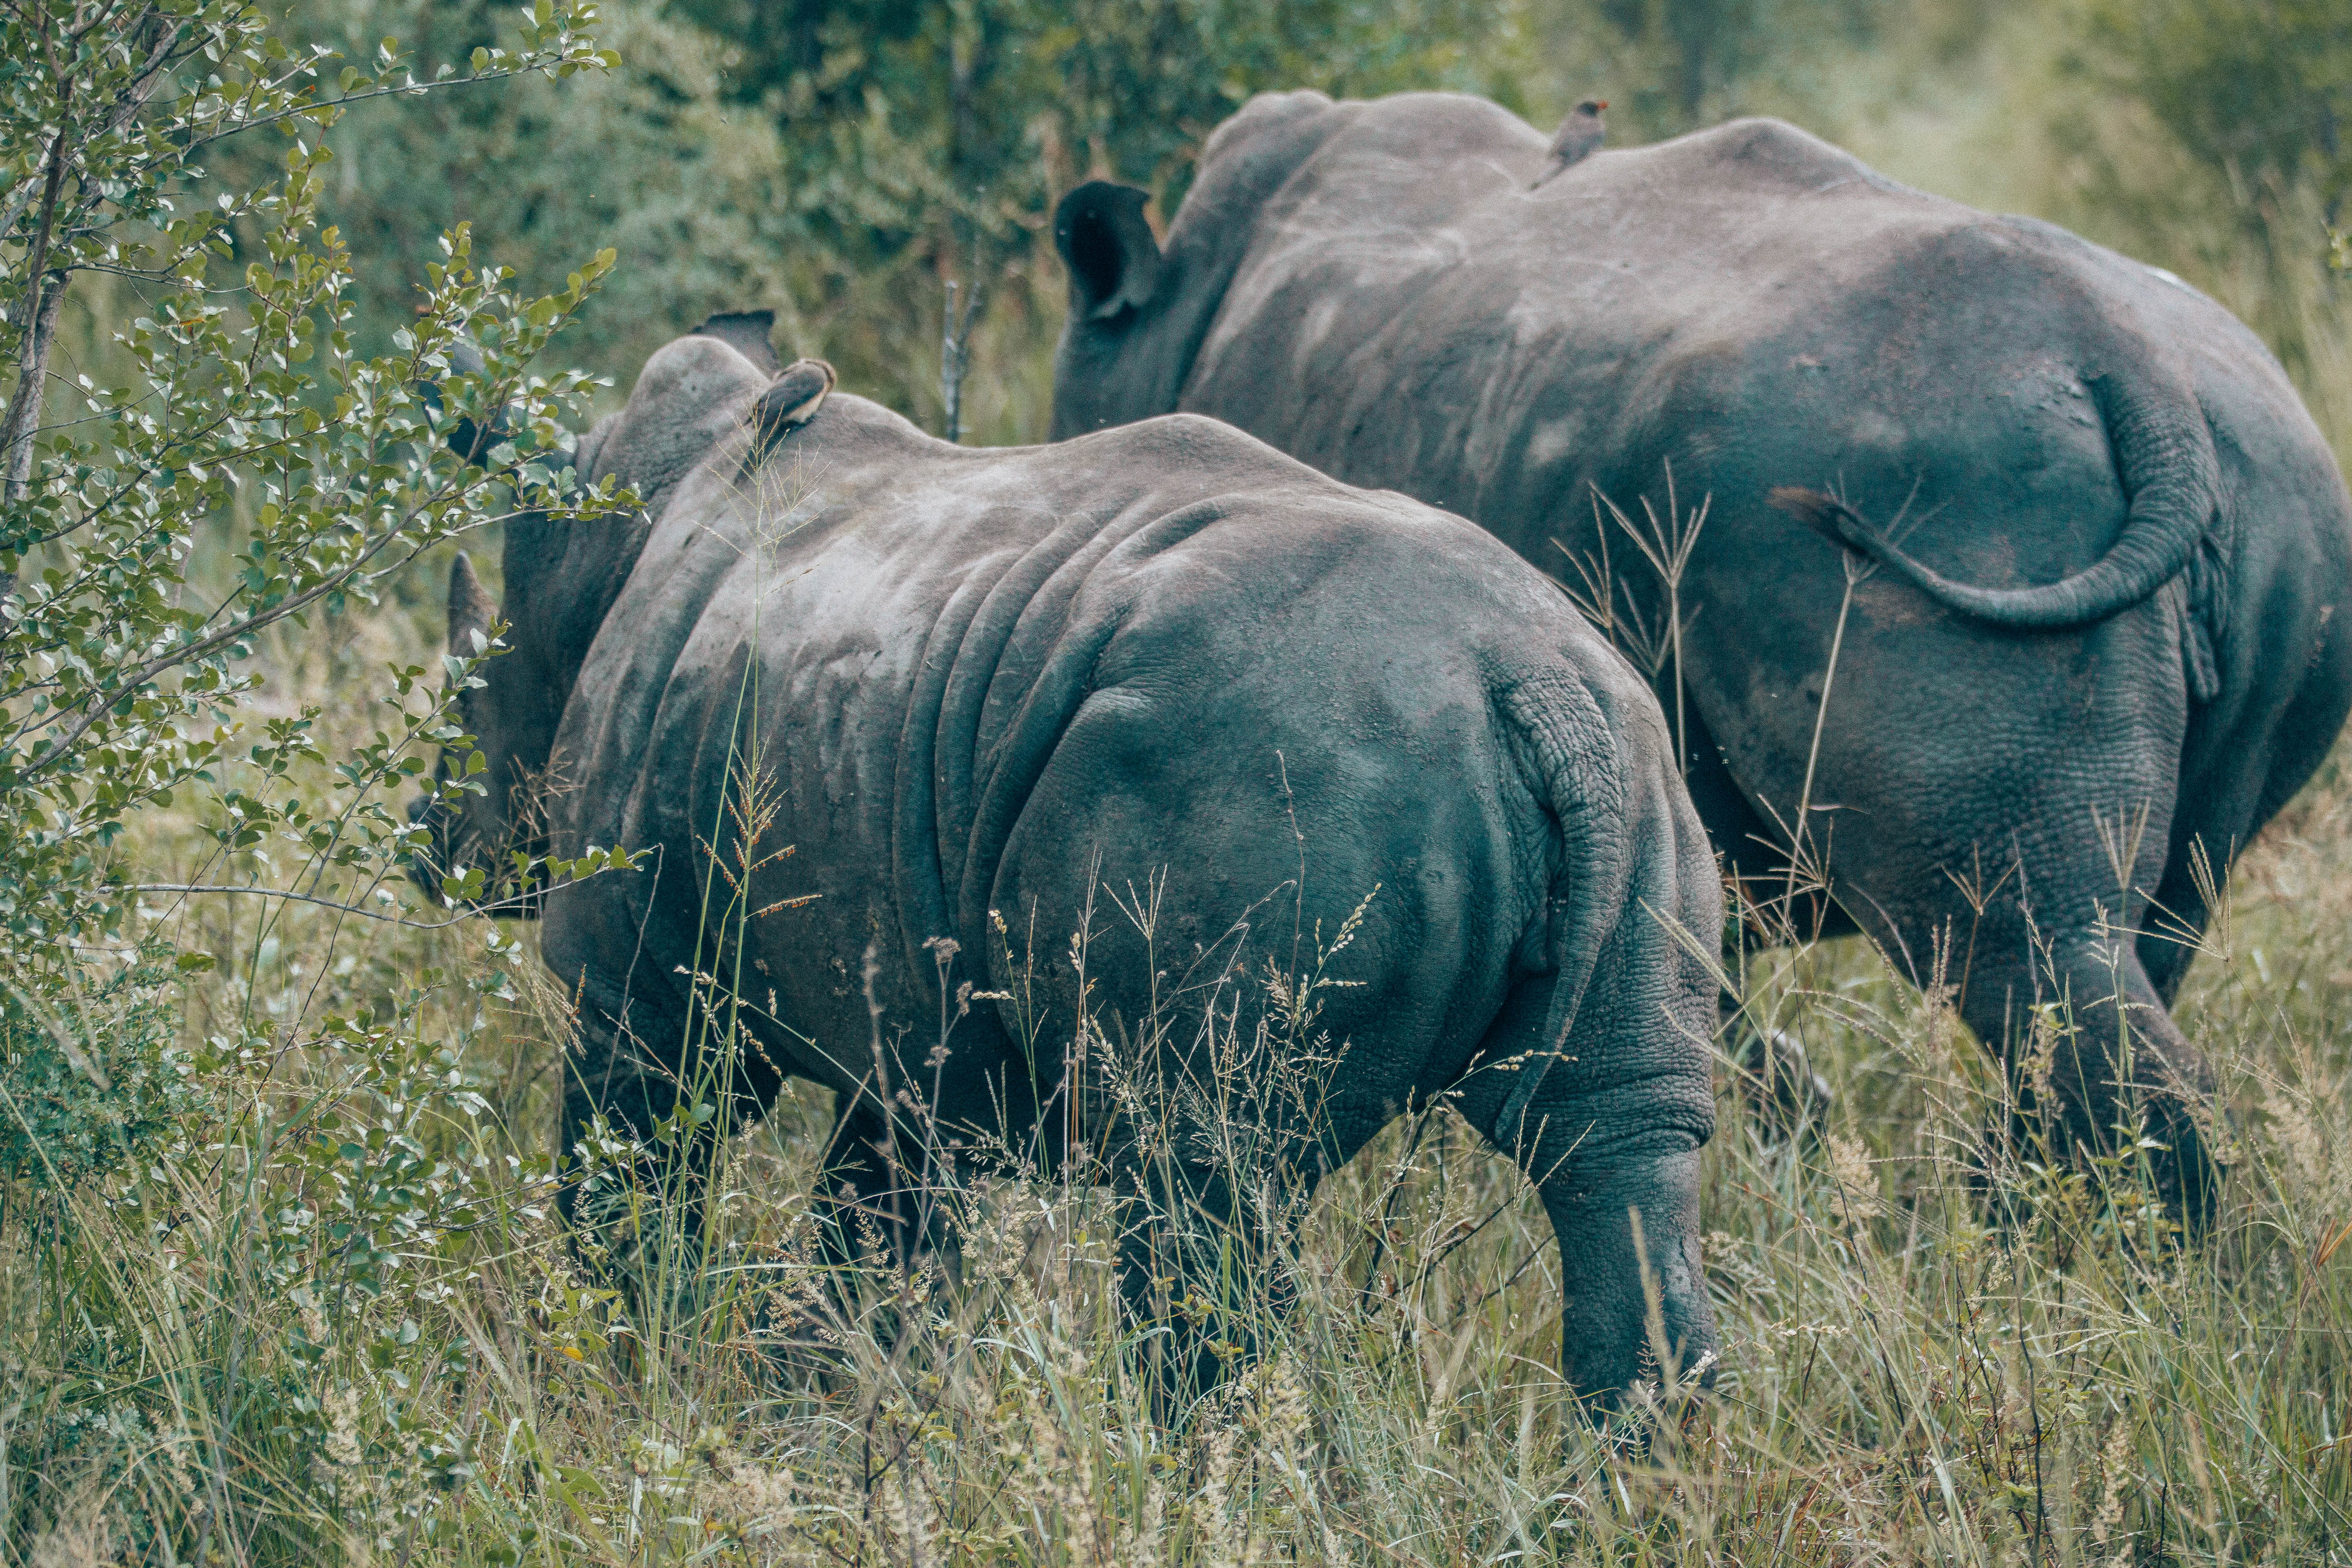 Rhinos from behind.